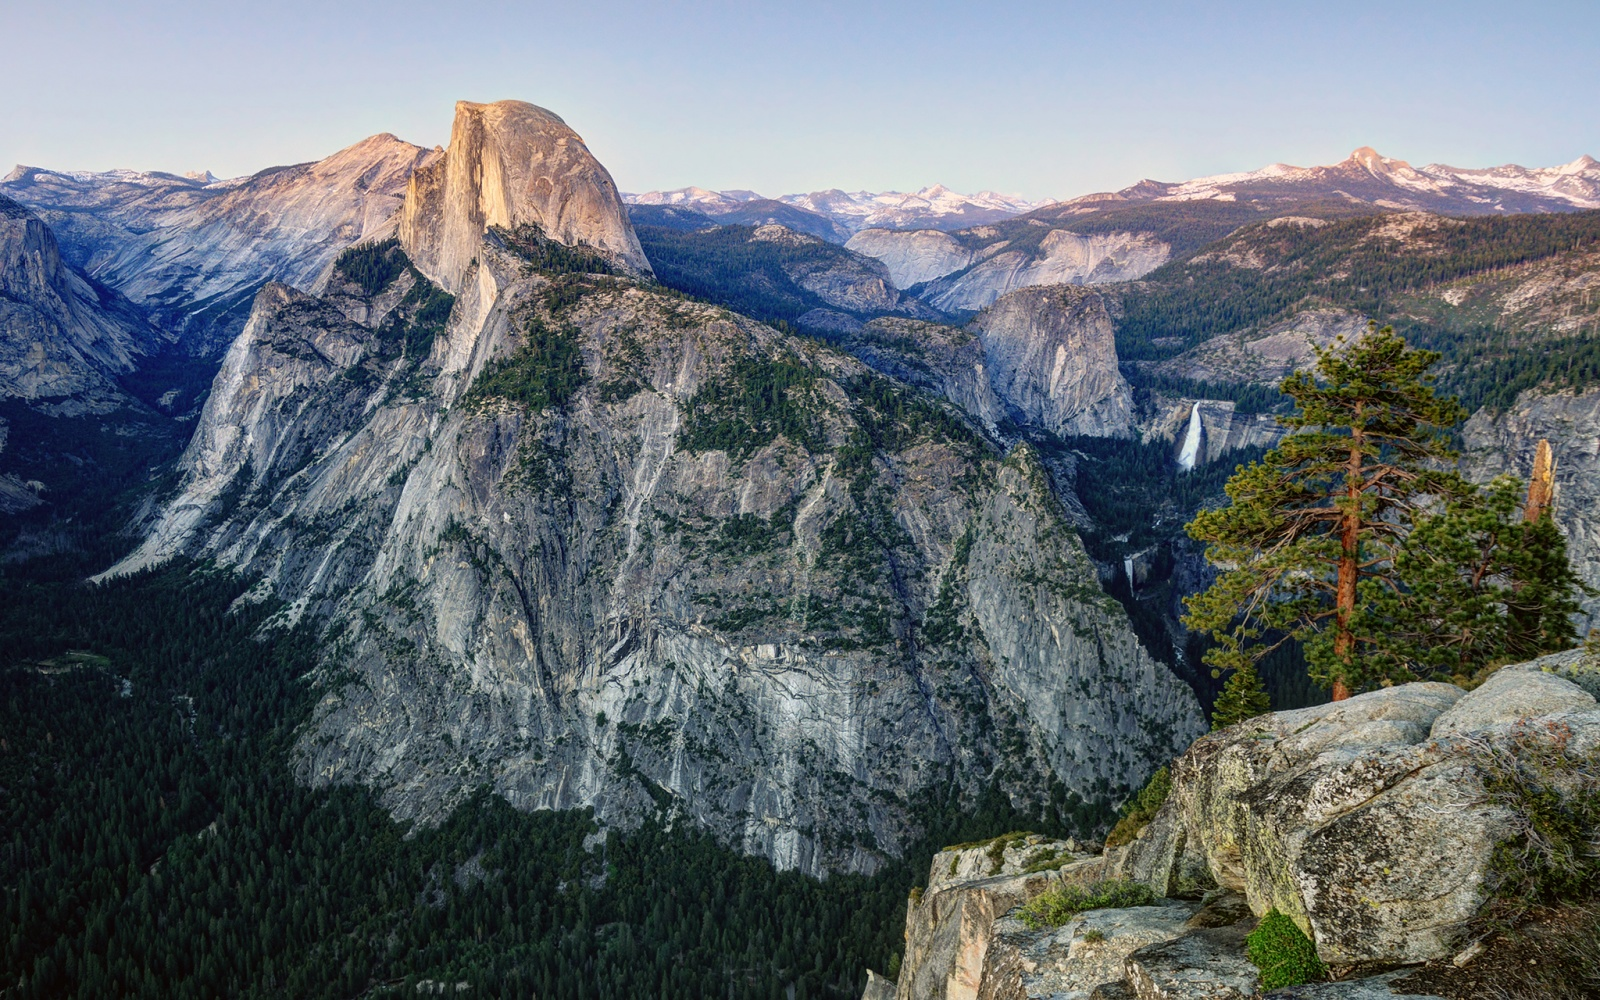 Glacier Point, Yosemite, CA